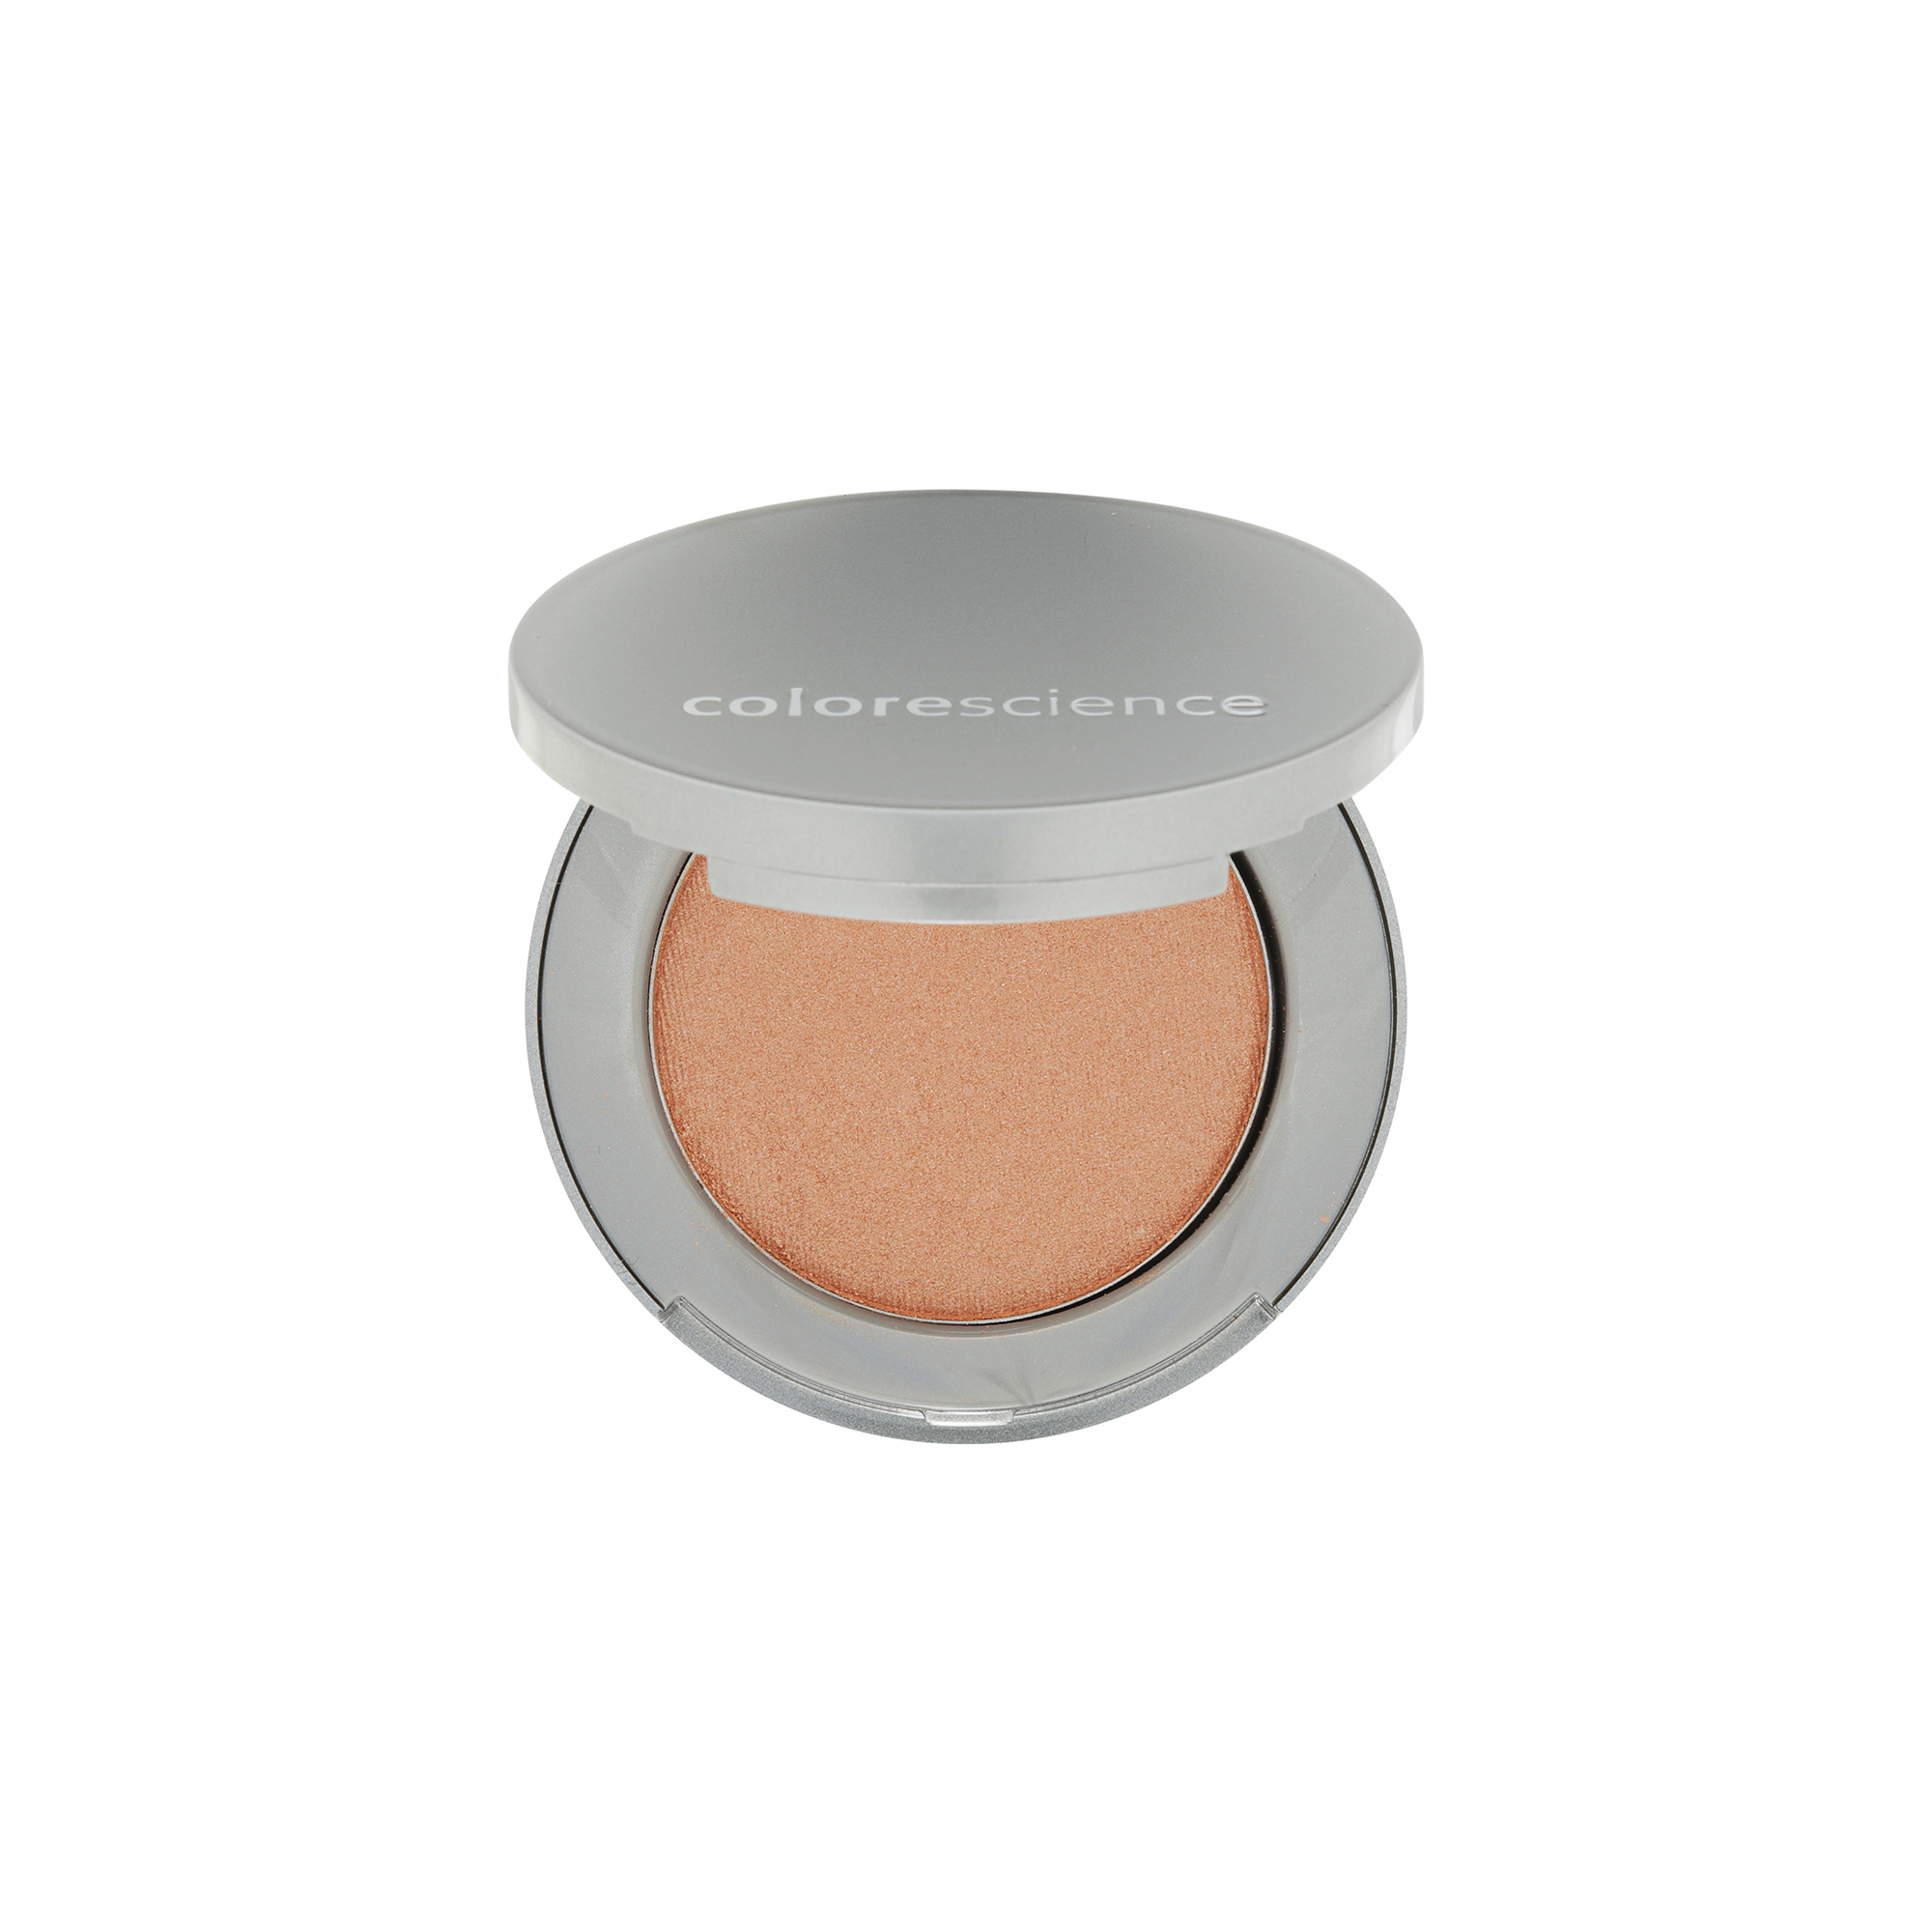 Colorecience Illuminator Morning Glow